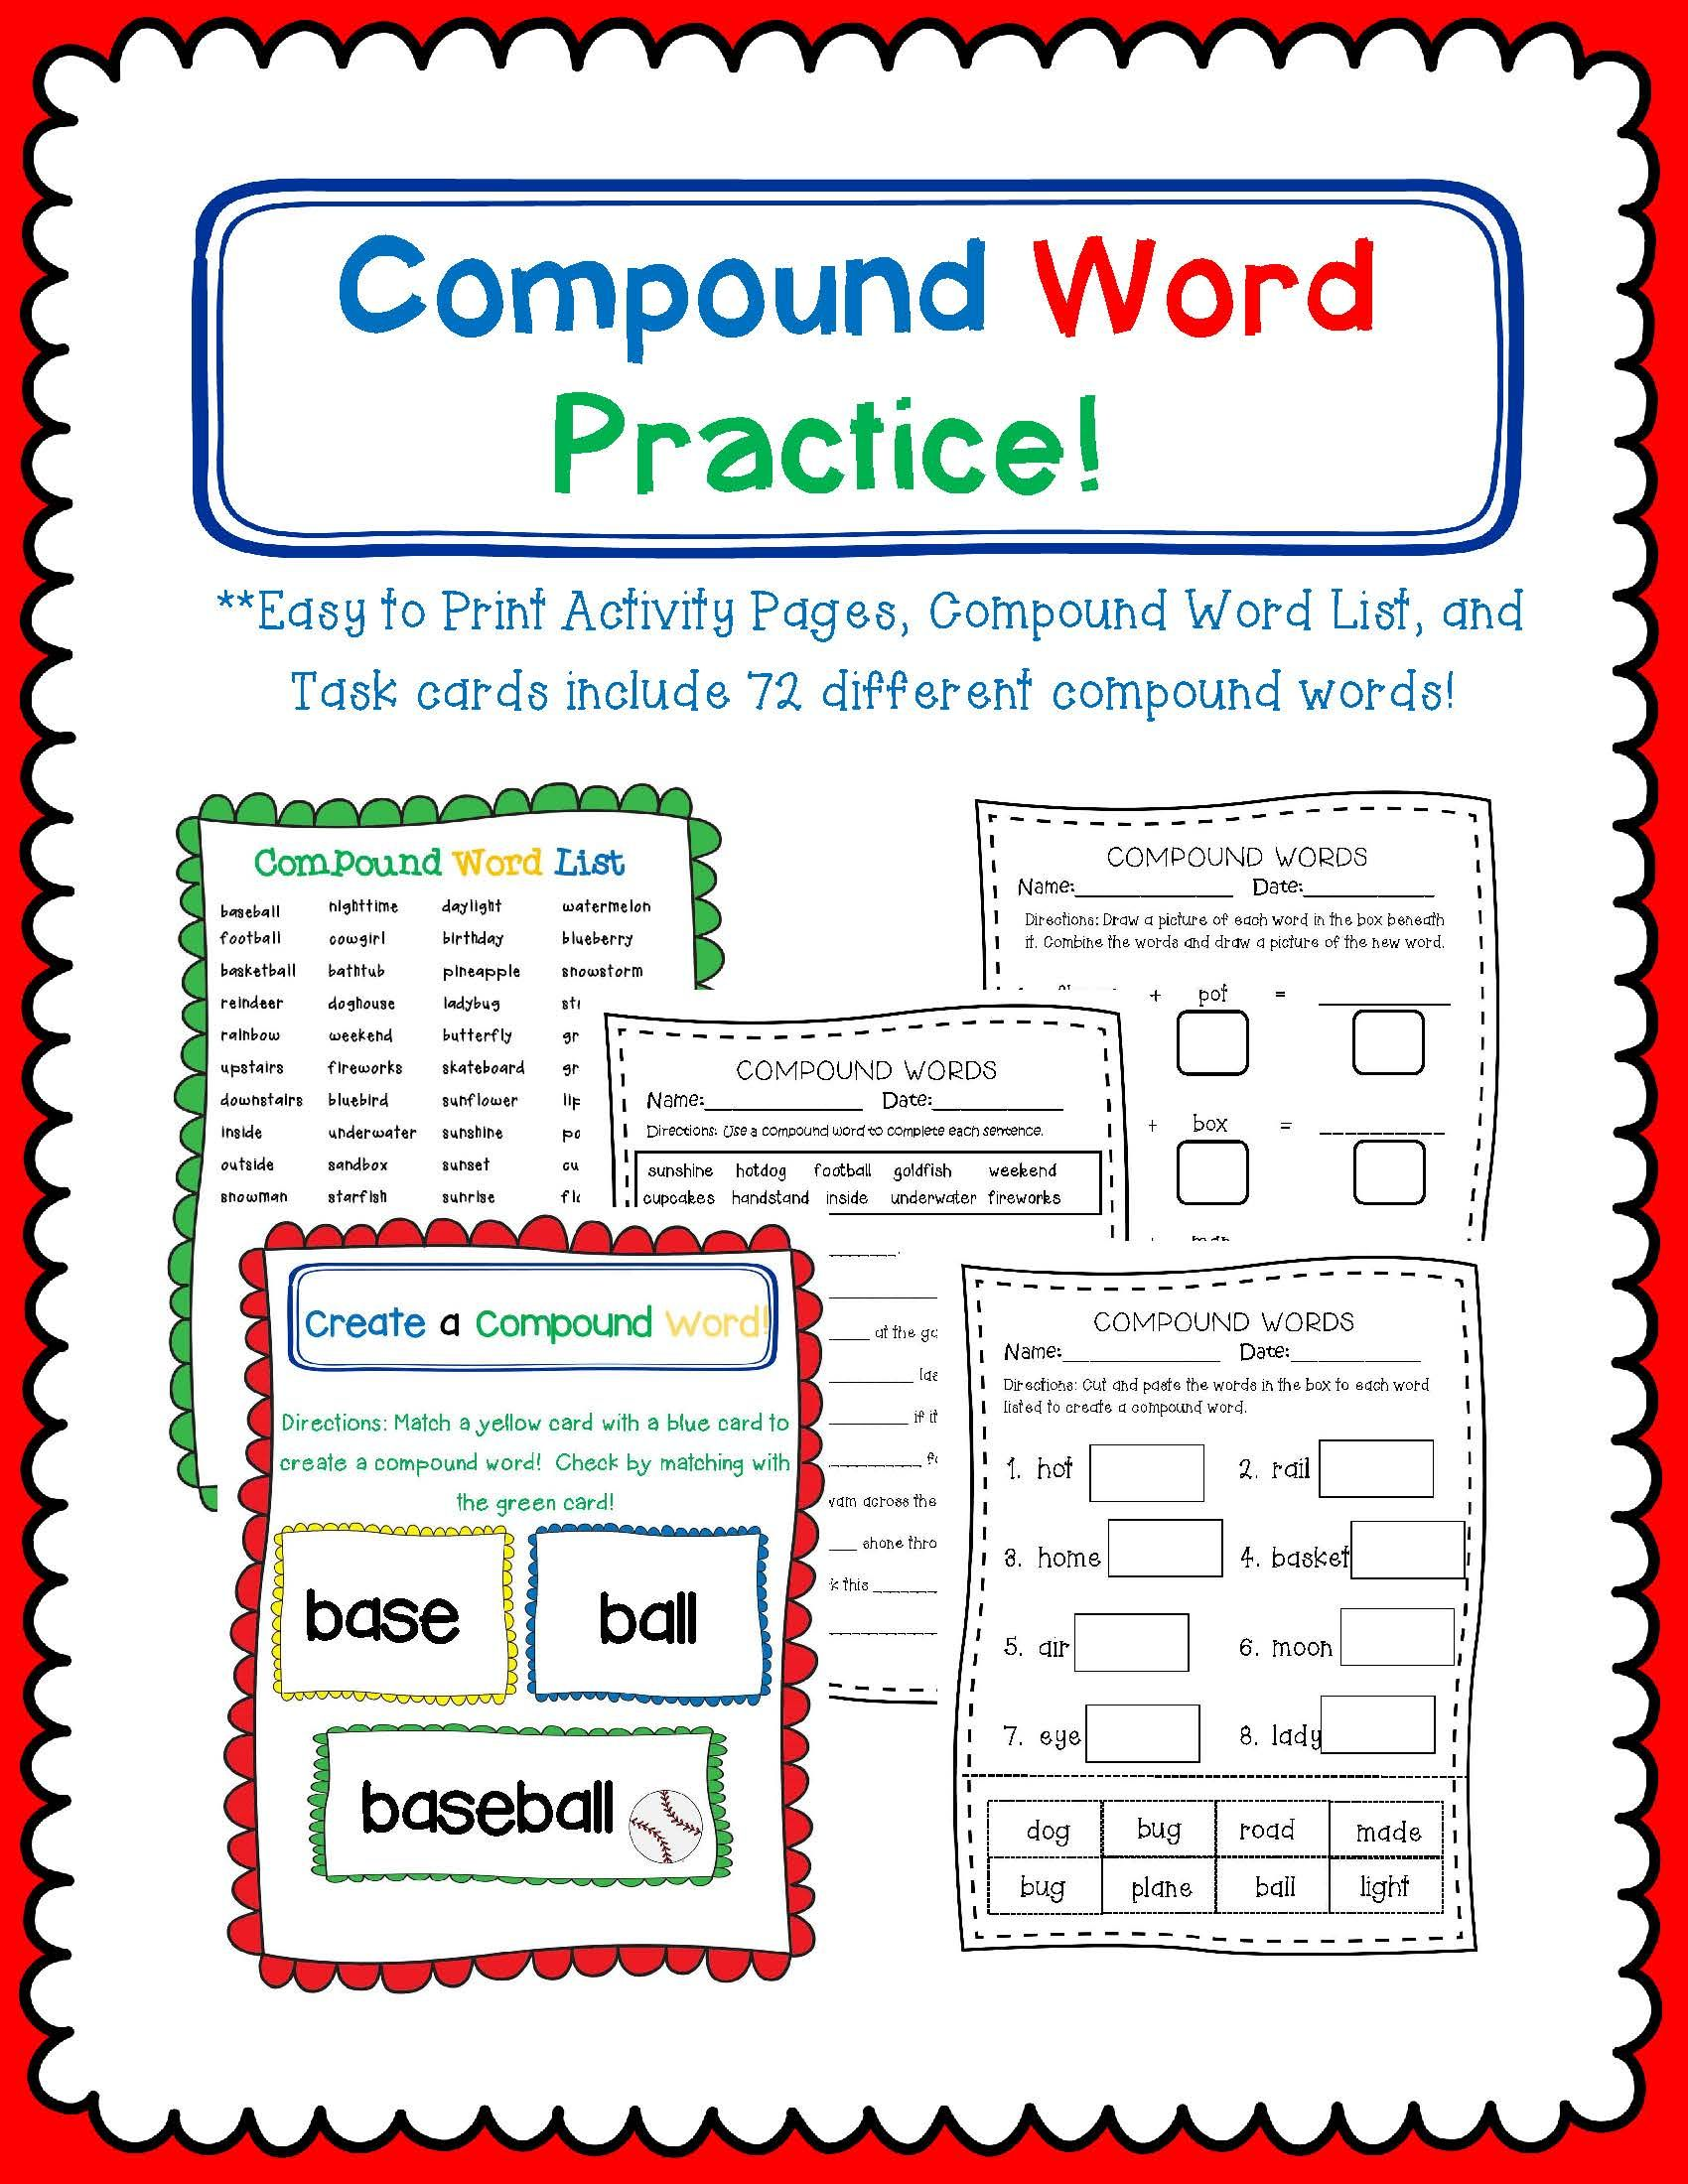 This Product Includes Practice Pages Compound Word List